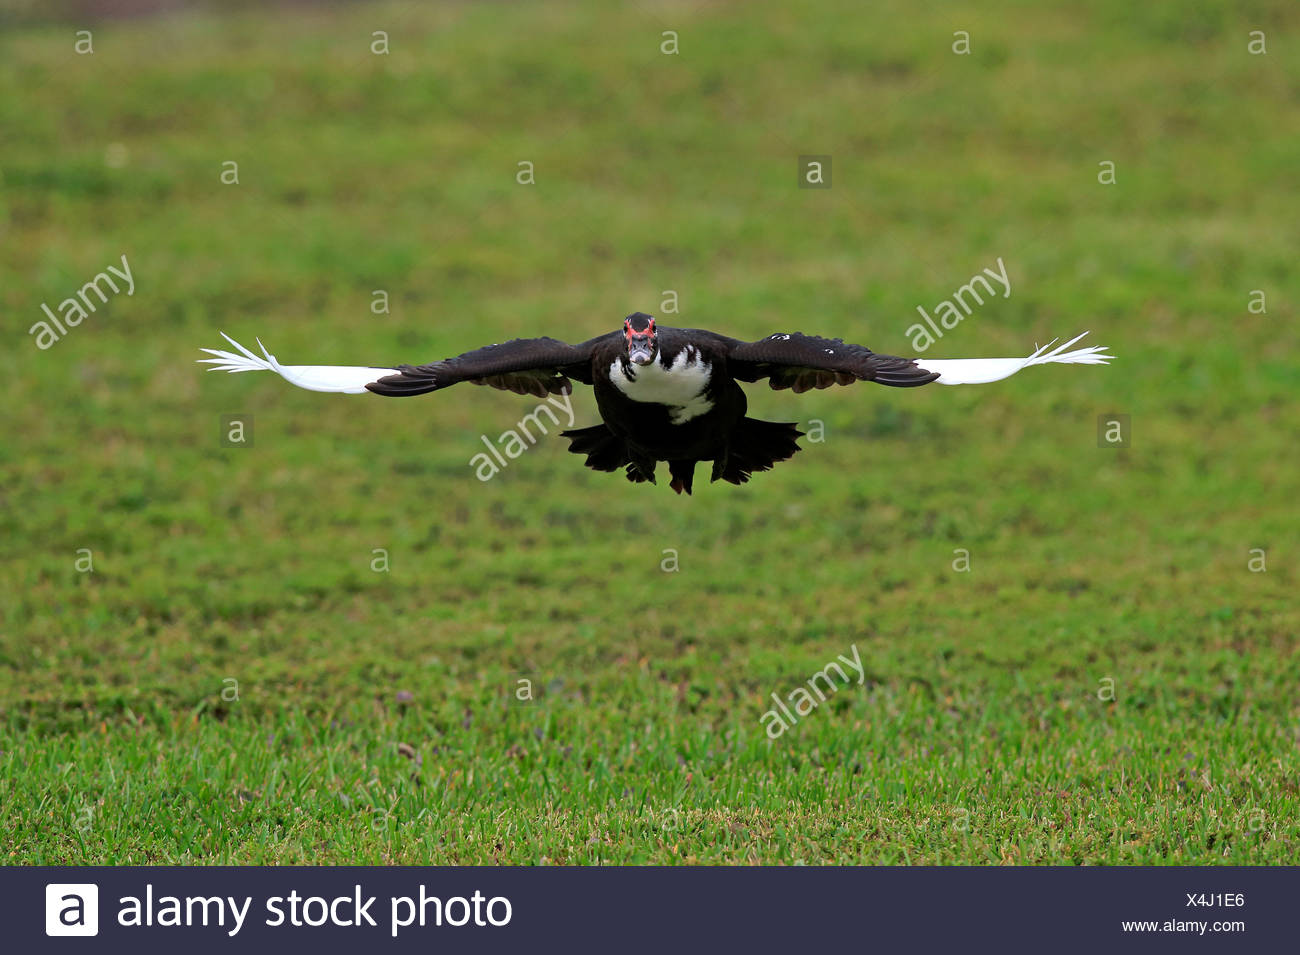 Muscovy Duck, adult flying, Miami, Florida, USA, North